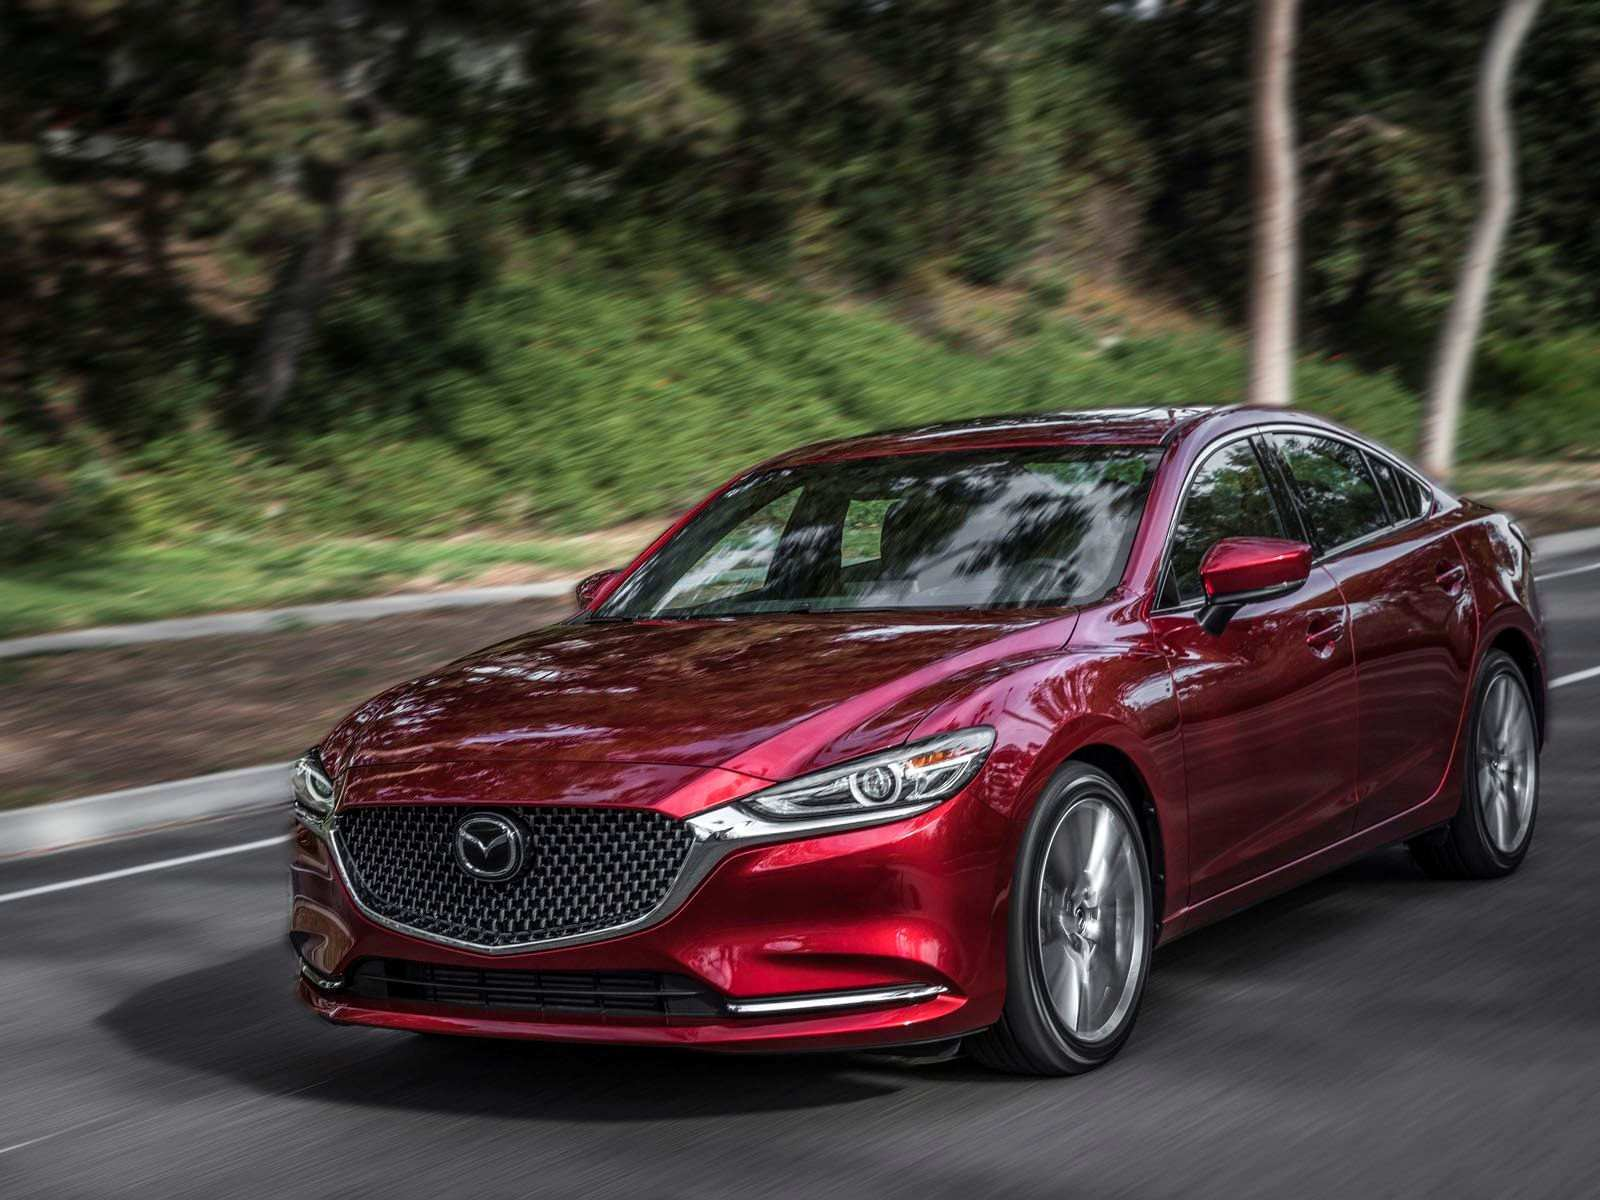 34 Gallery of 2020 Mazda 6 All Wheel Drive Release Date with 2020 Mazda 6 All Wheel Drive